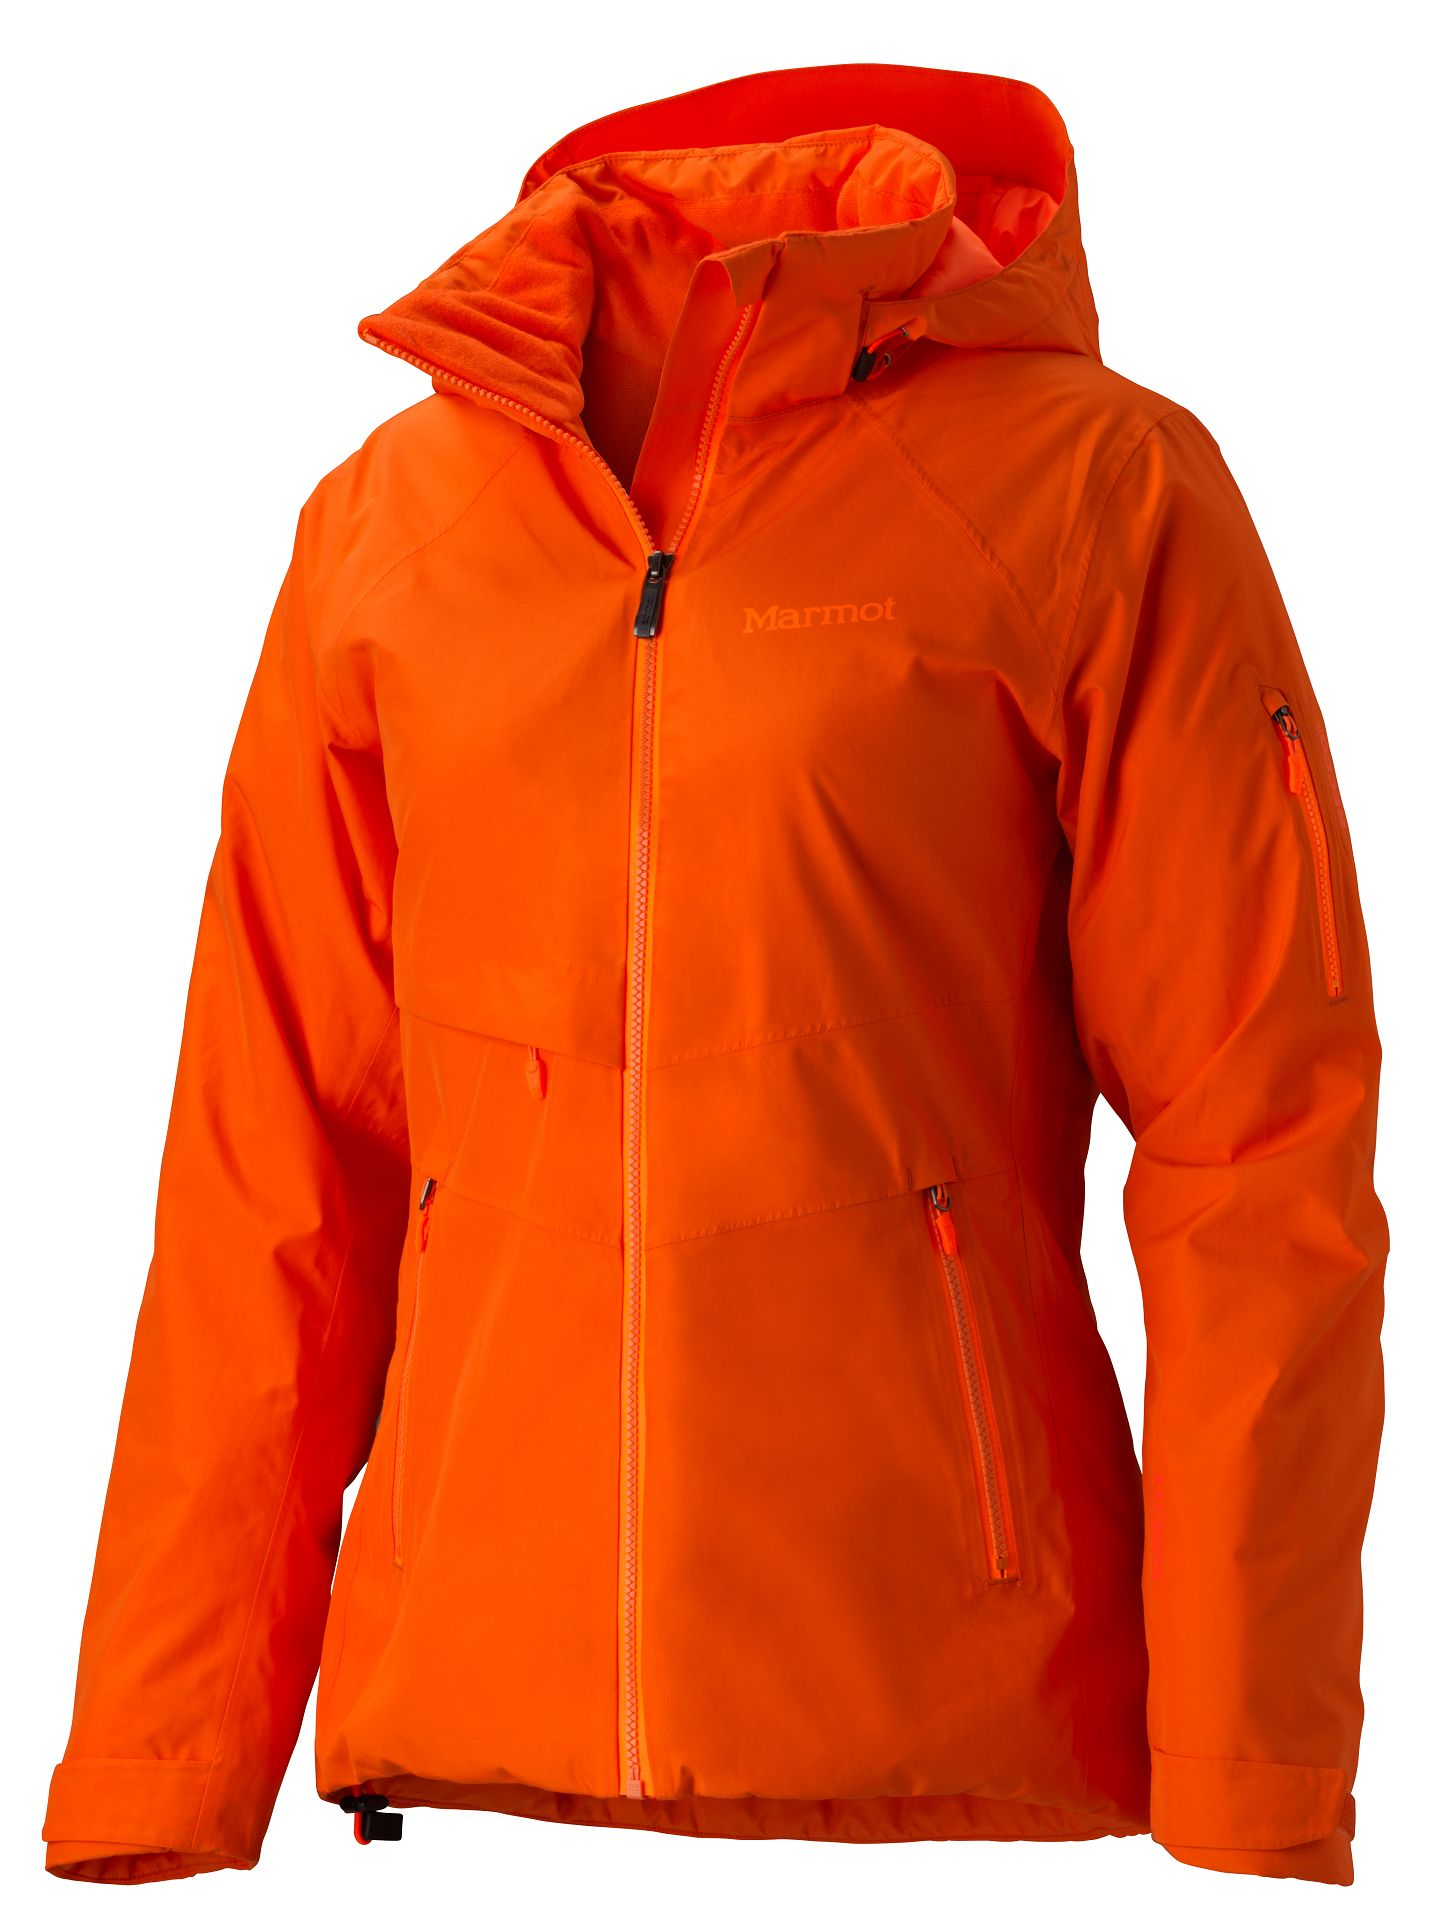 Marmot Wm's Innsbruck Jacket Orange Coral-30